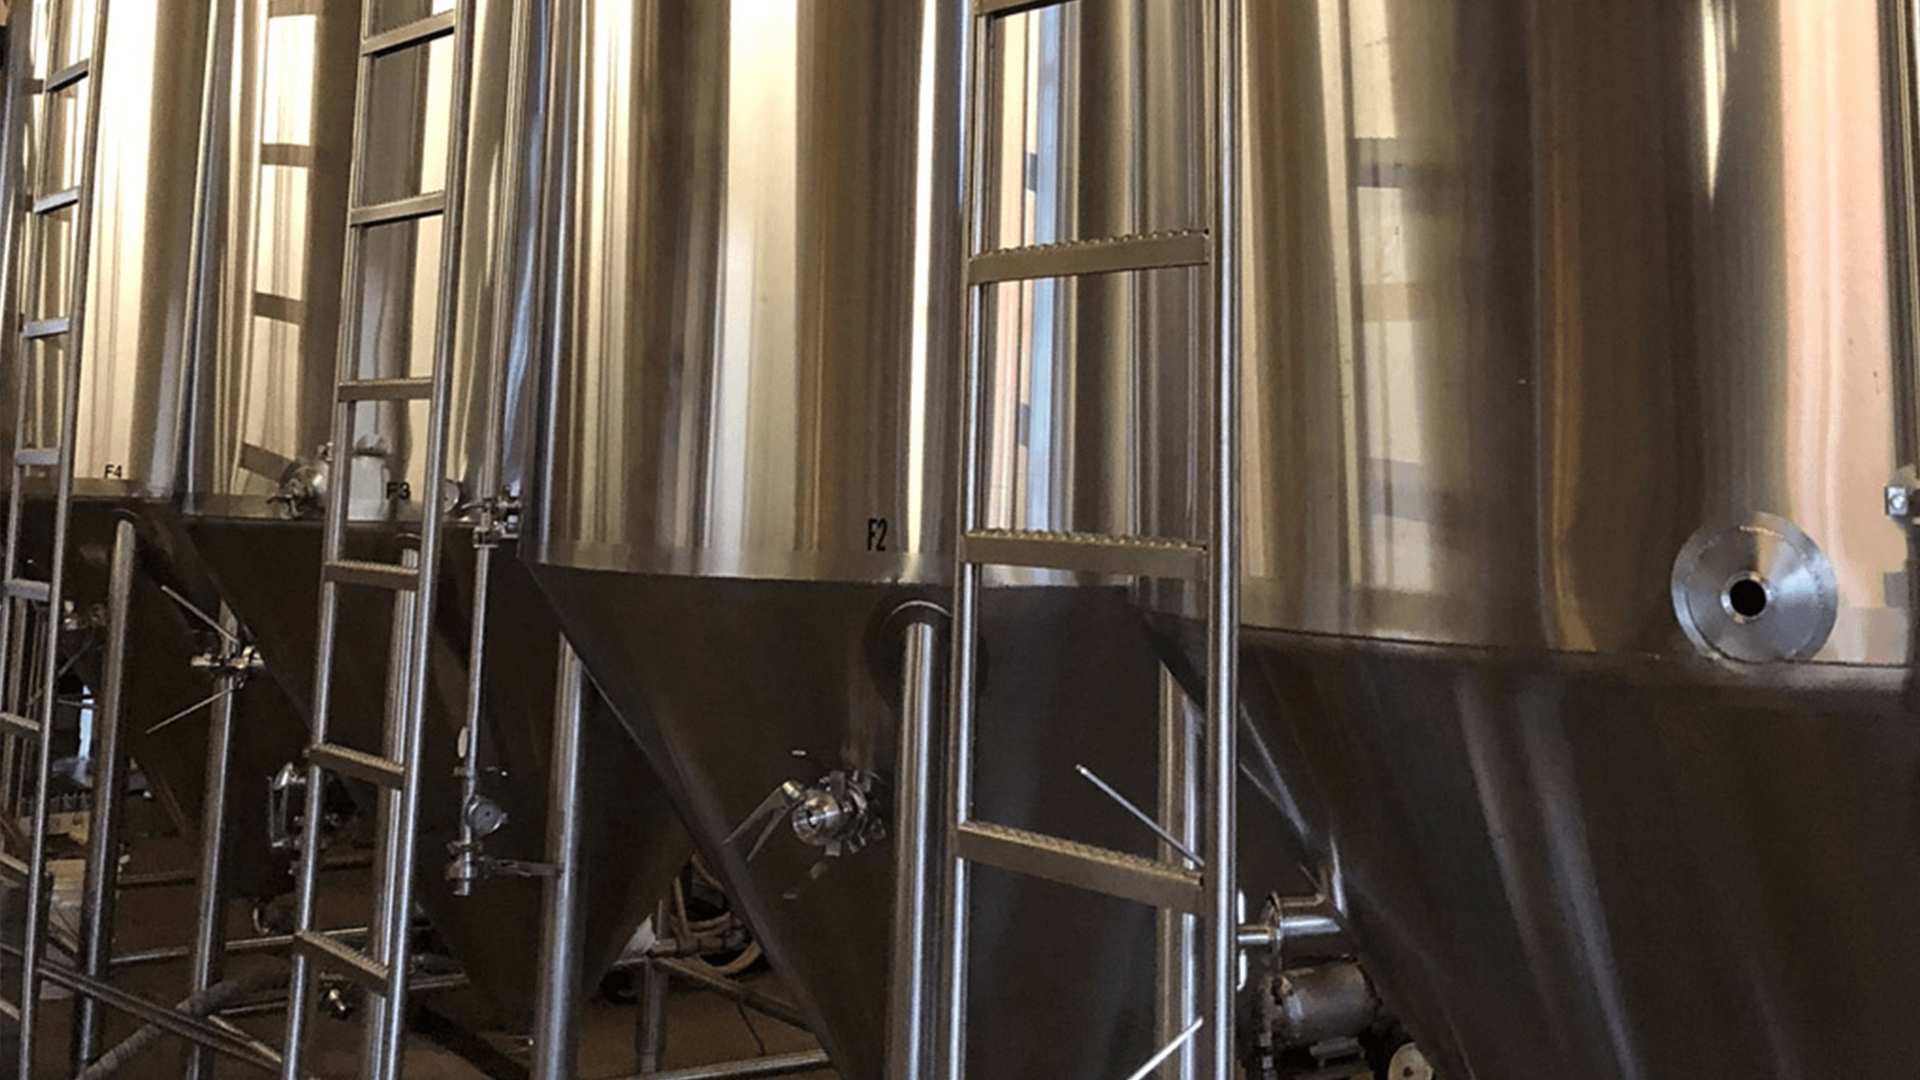 Using an IoT Brewery Measurement System to Reduce Costs and Make Better Beer